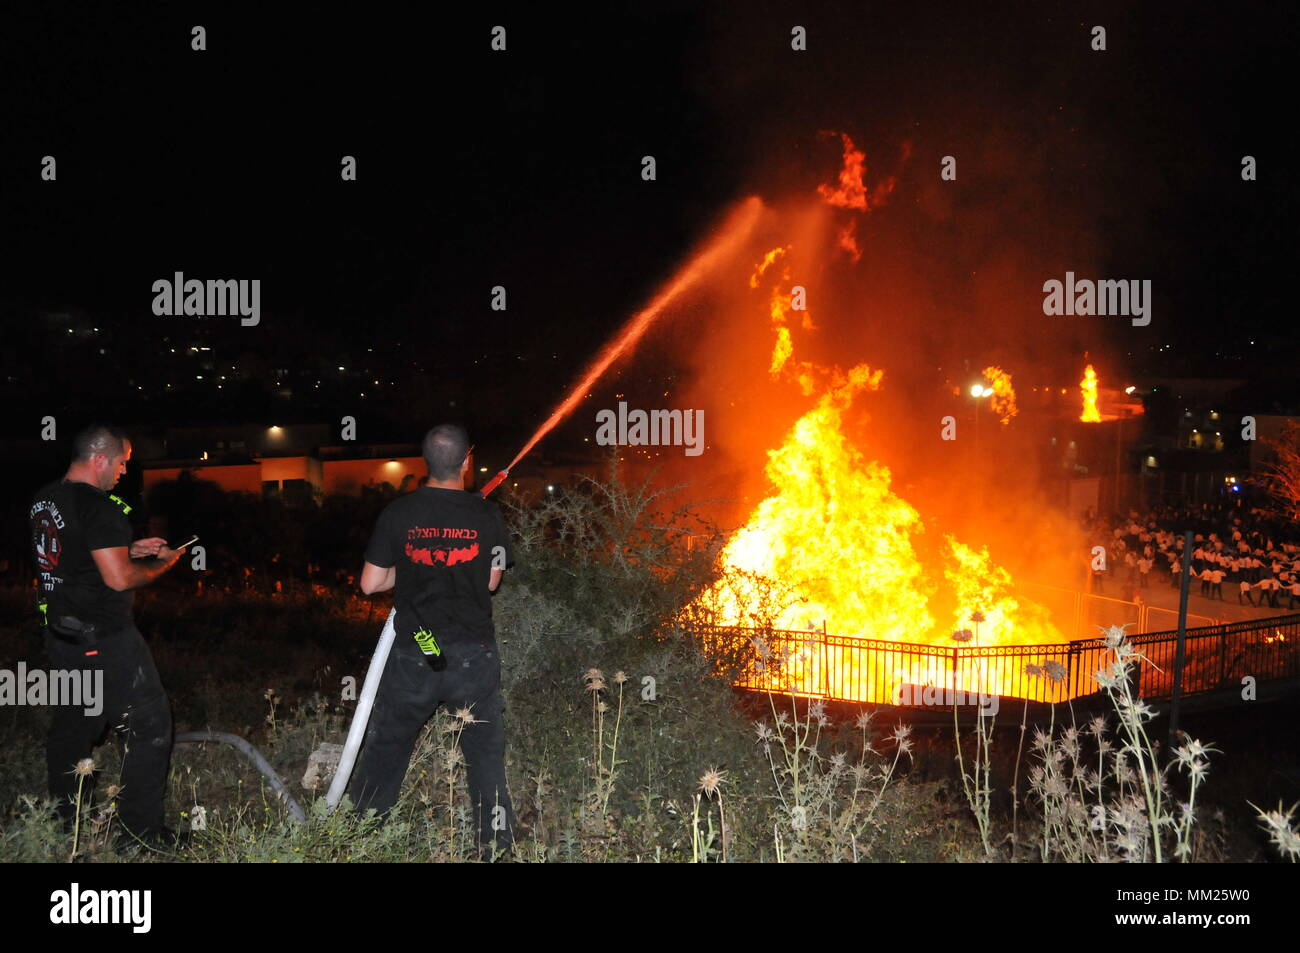 Firefighter extinguish a large bonfire during the lag b'omer celebrations (Lag B'Omer is a day for bonfire celebrations.) - Stock Image